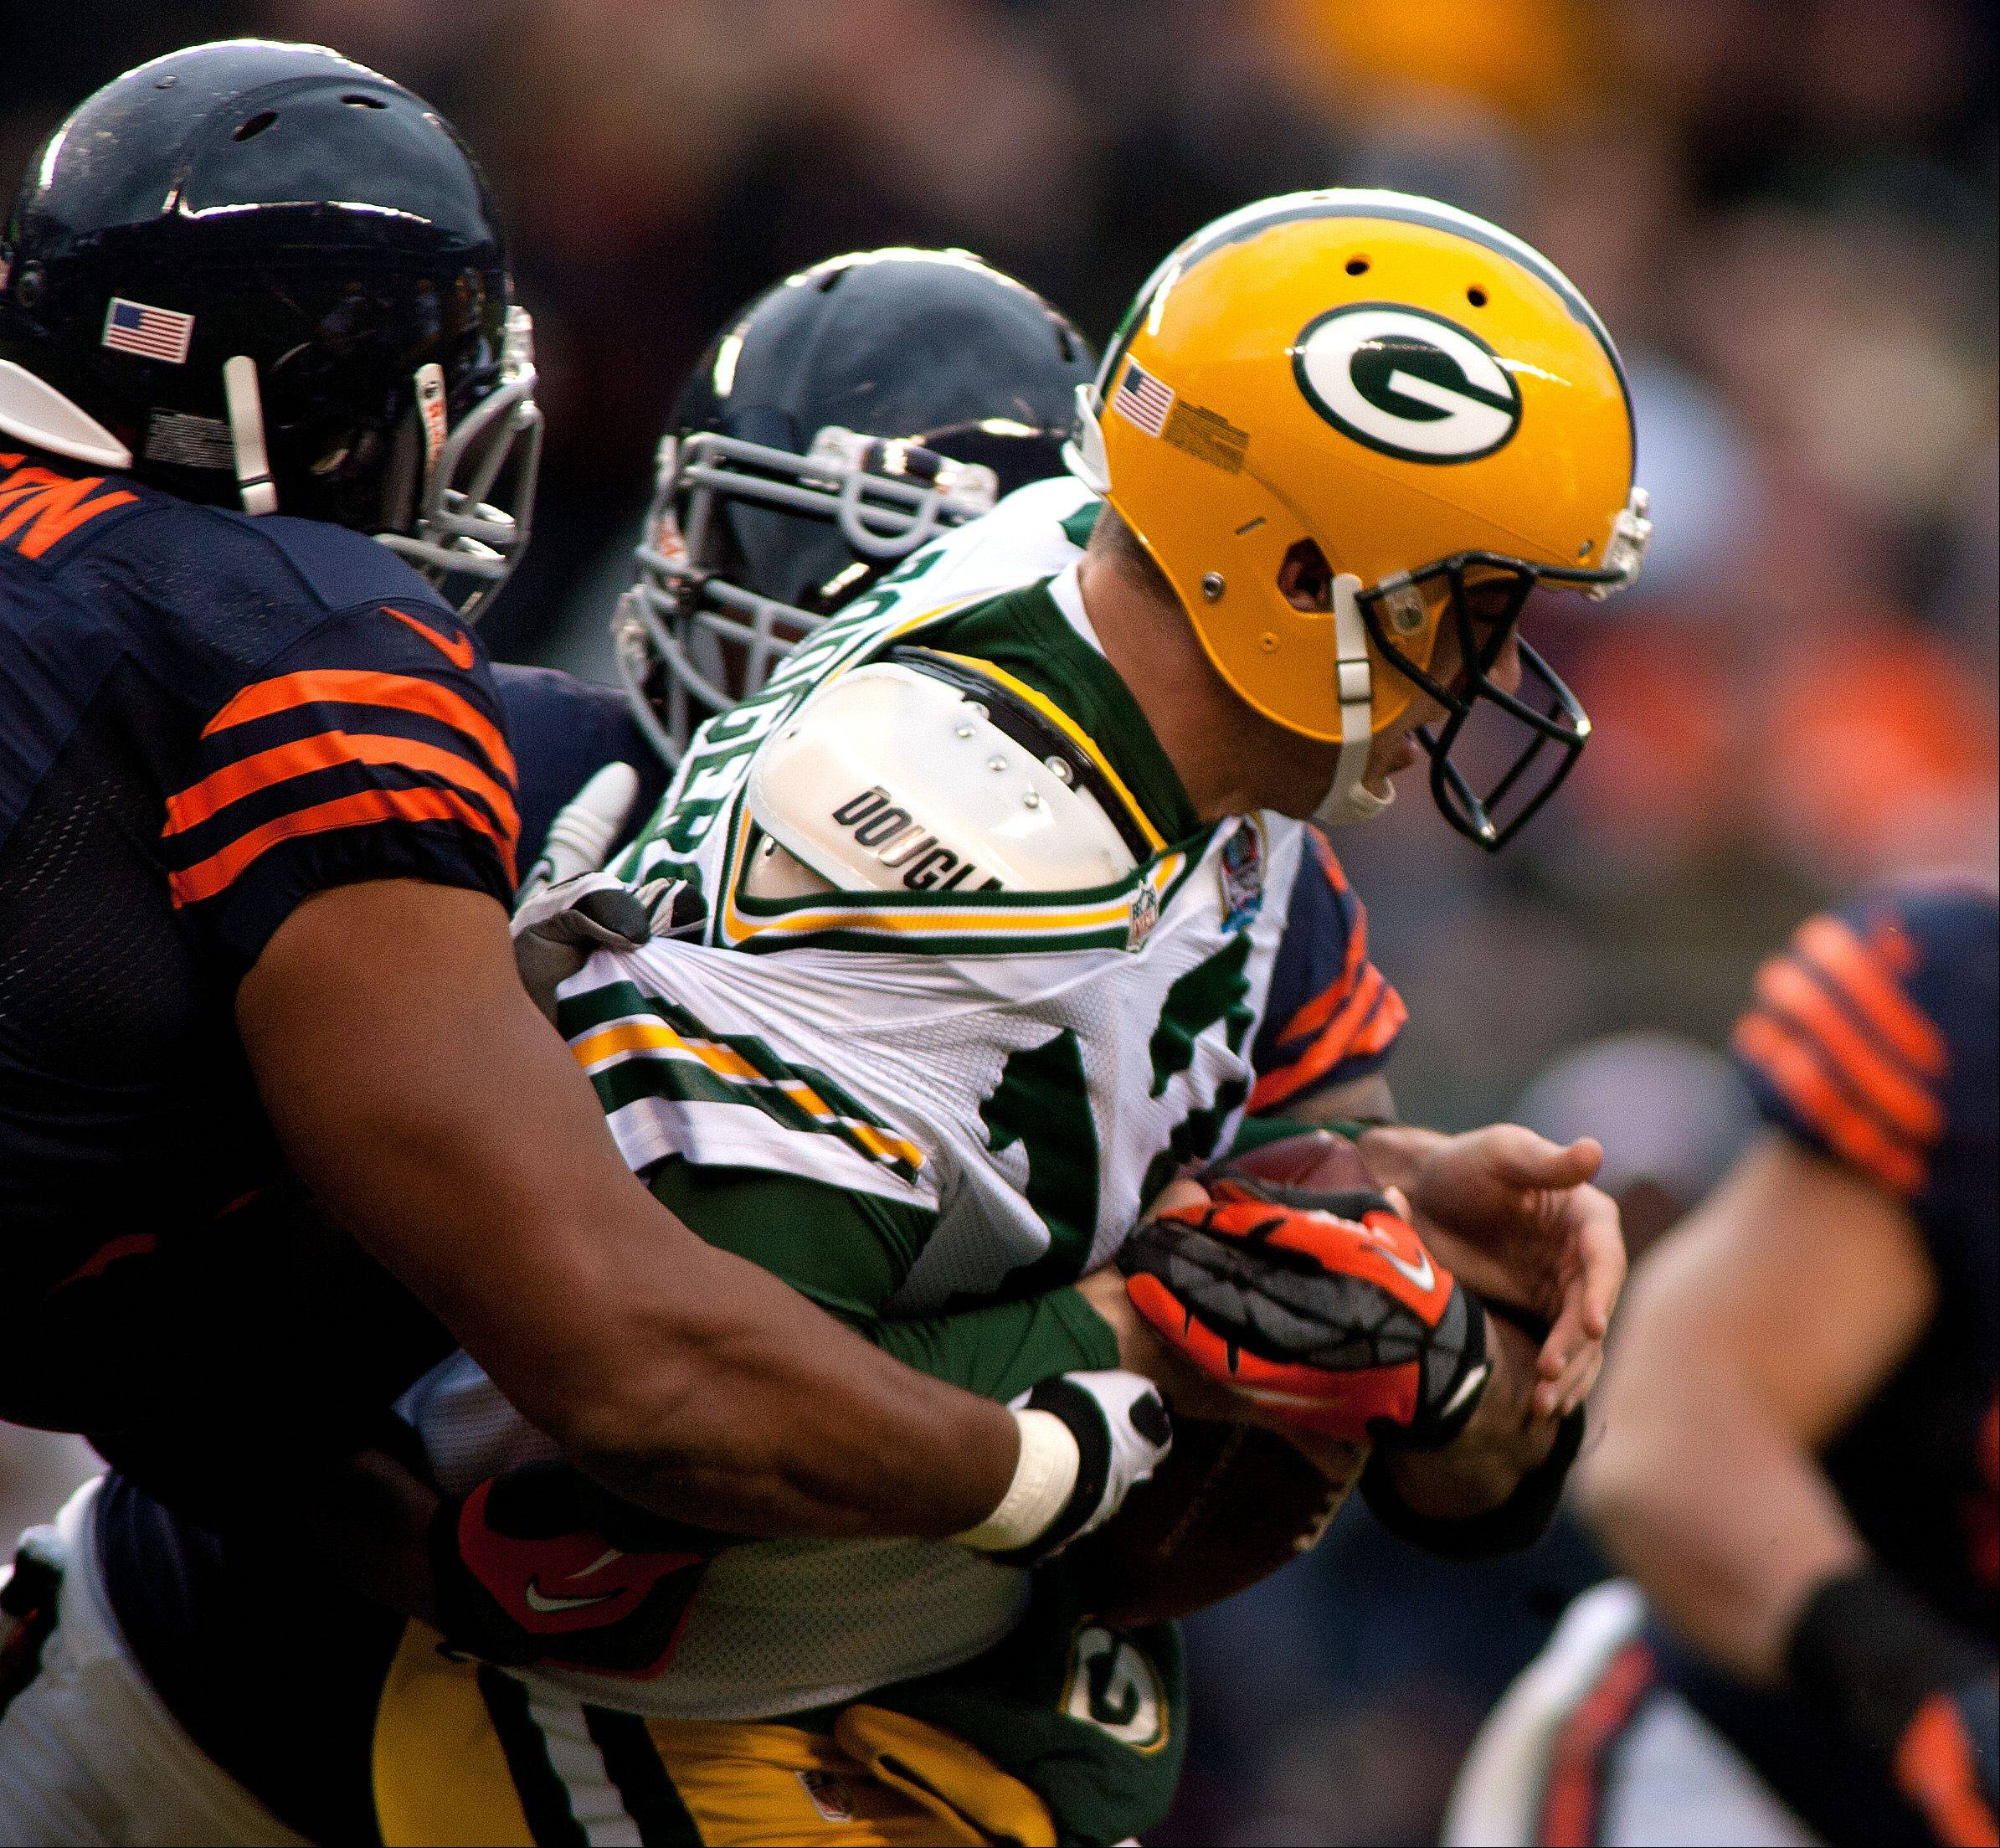 The Bear's Corey Wootton, left, sacks Packer quarterback Aaron Rodgers, during the first half of Sunday's game at Soldier Field in Chicago.